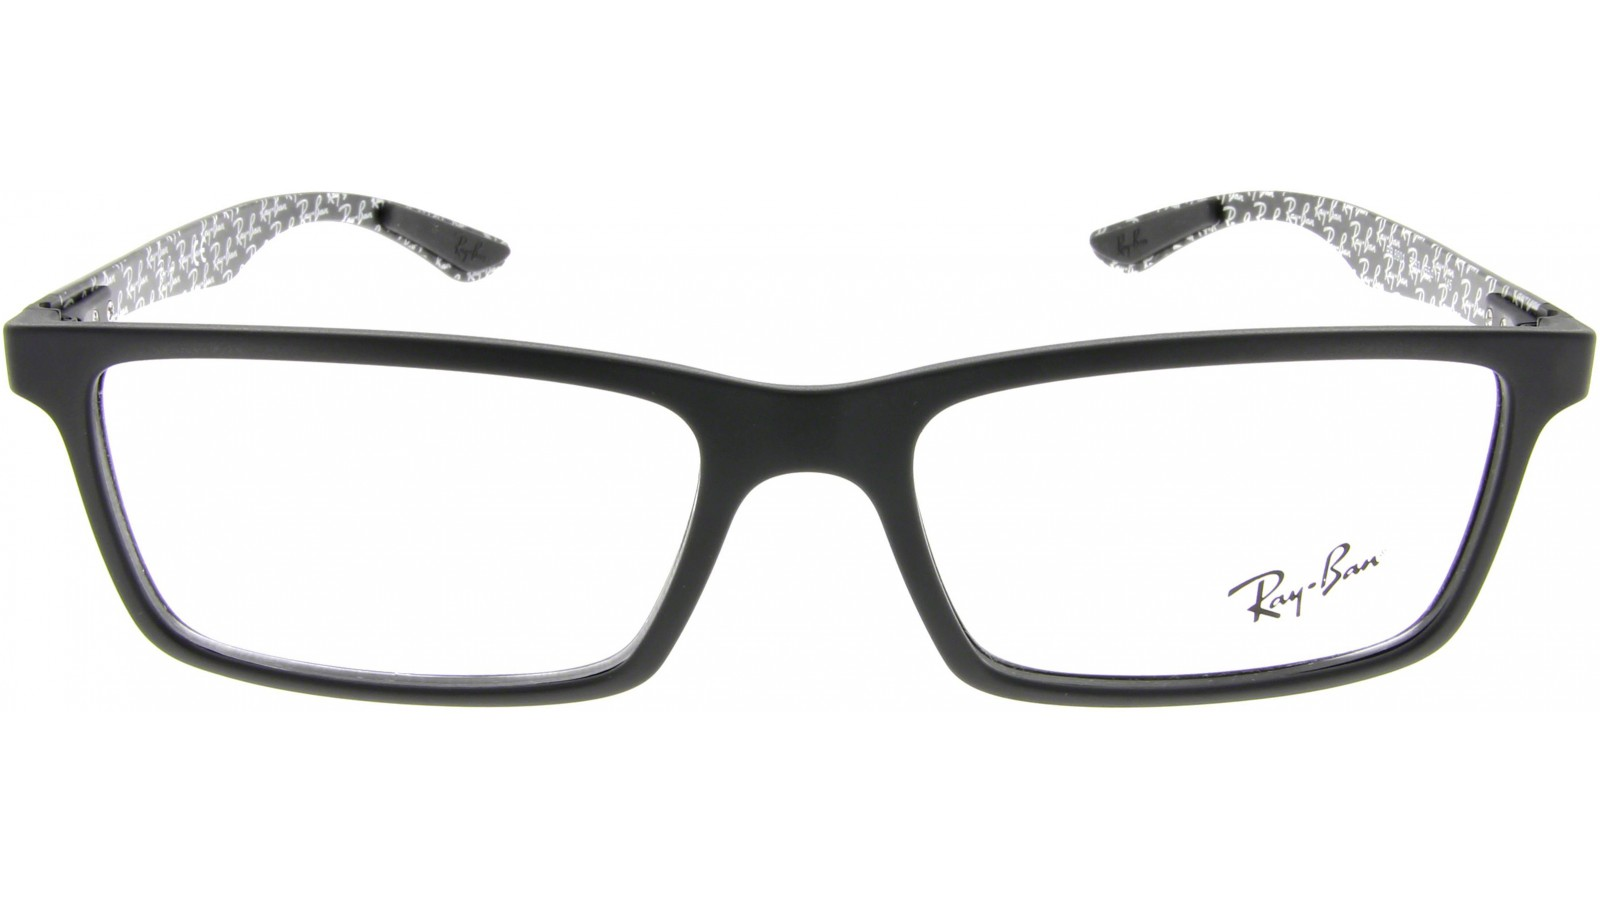 1f70e755ecc Ray Ban Rb 8901 Prescription